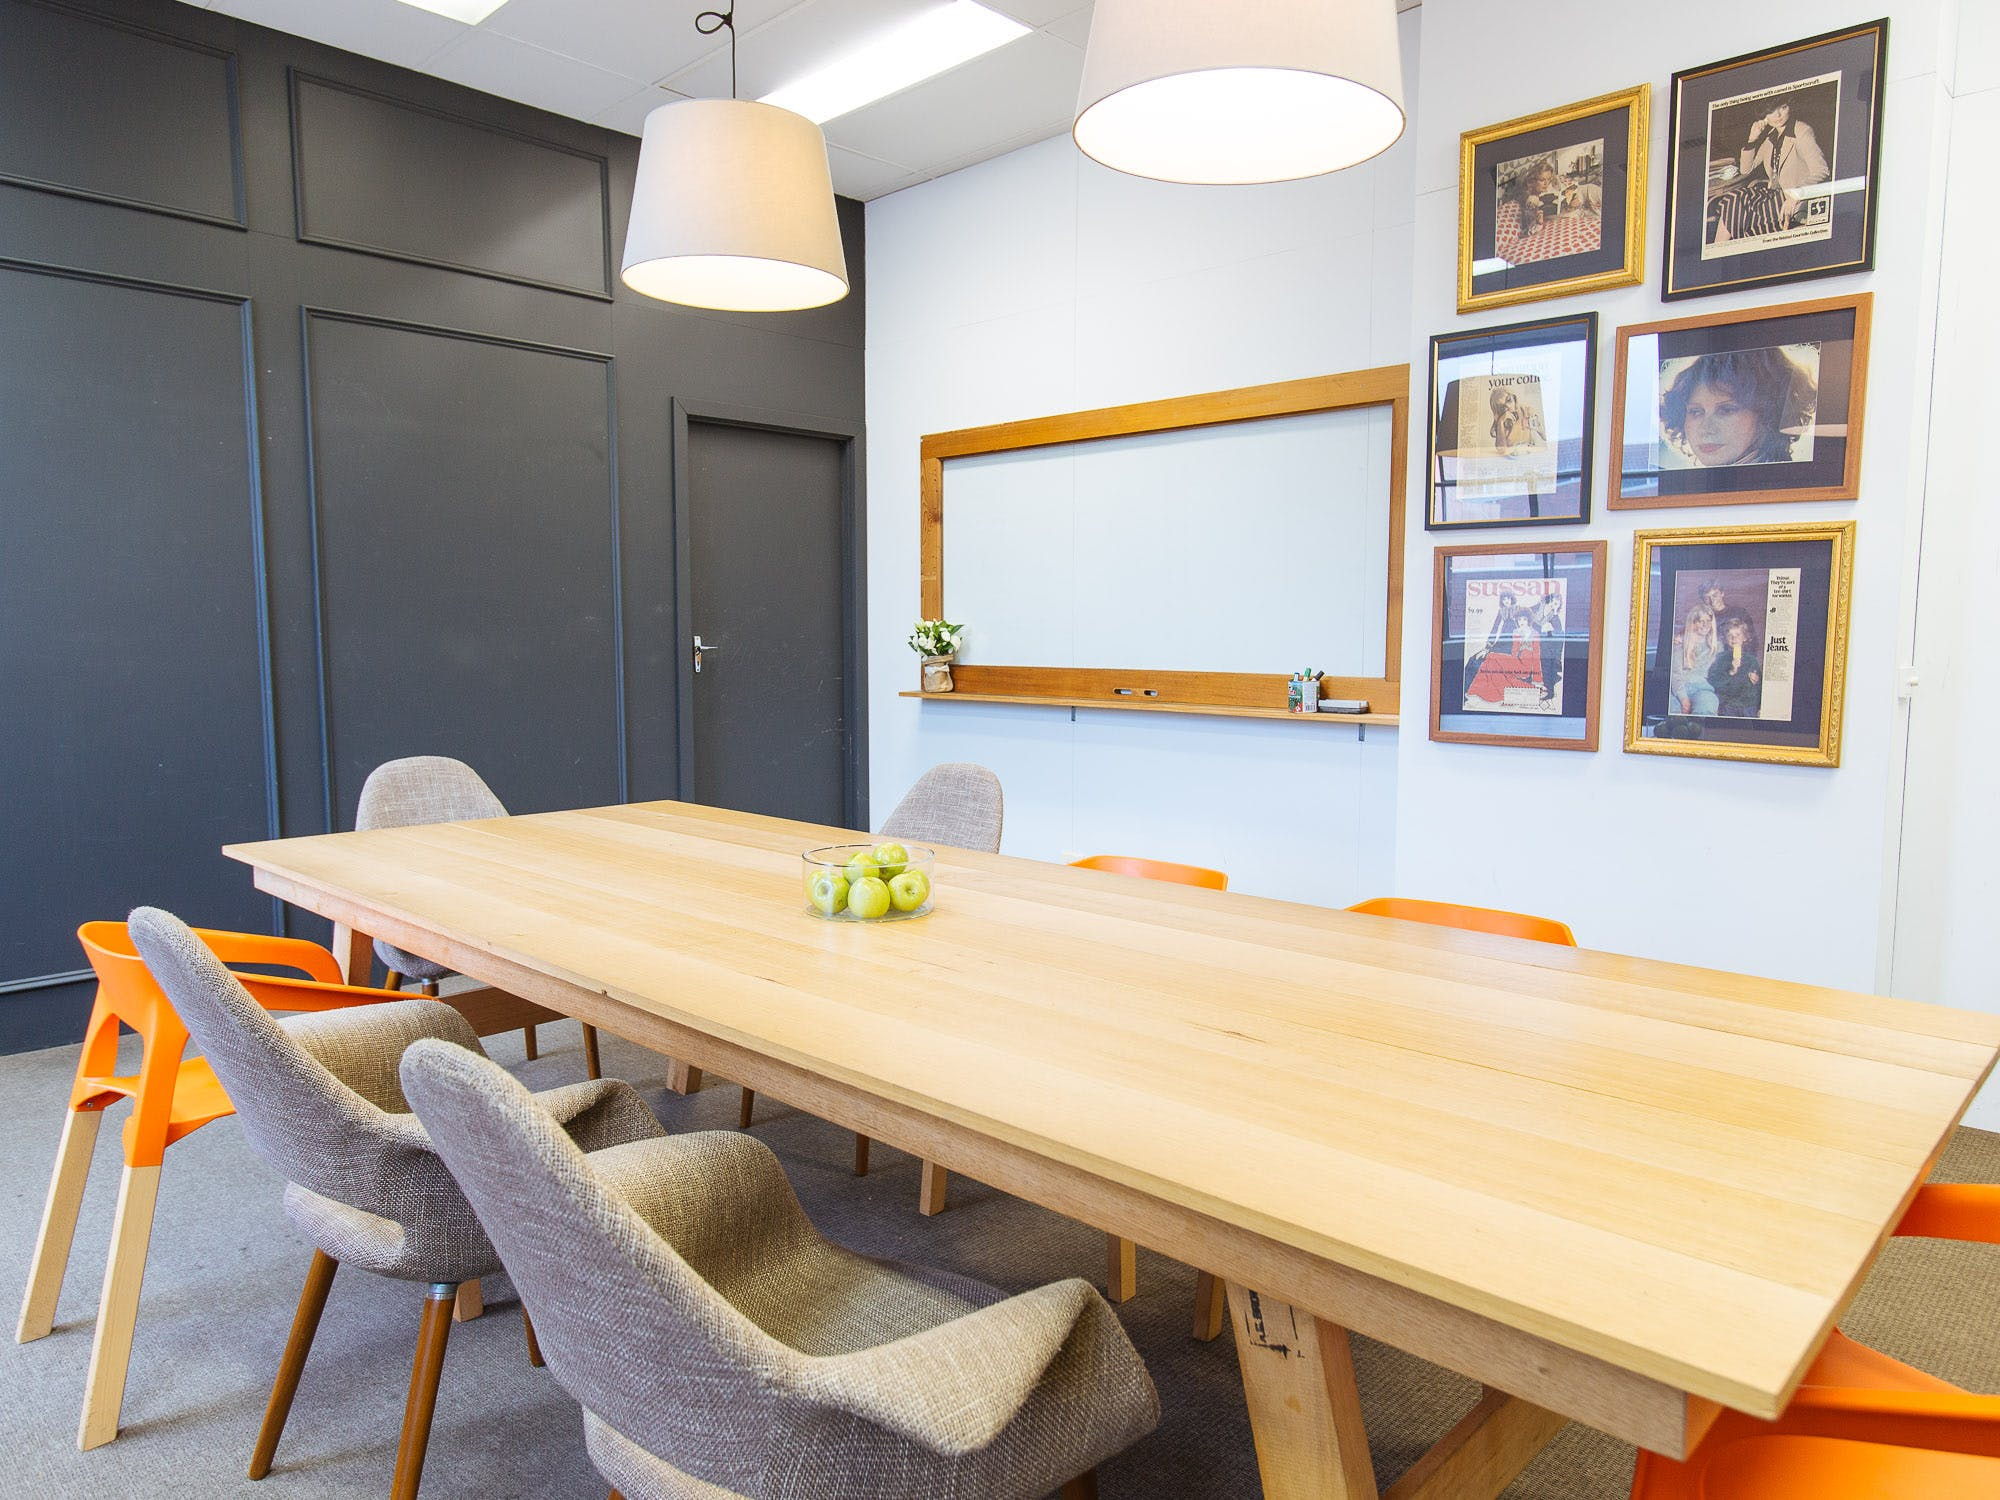 Boardroom 10, meeting room at Depo8 Co-Working, image 1